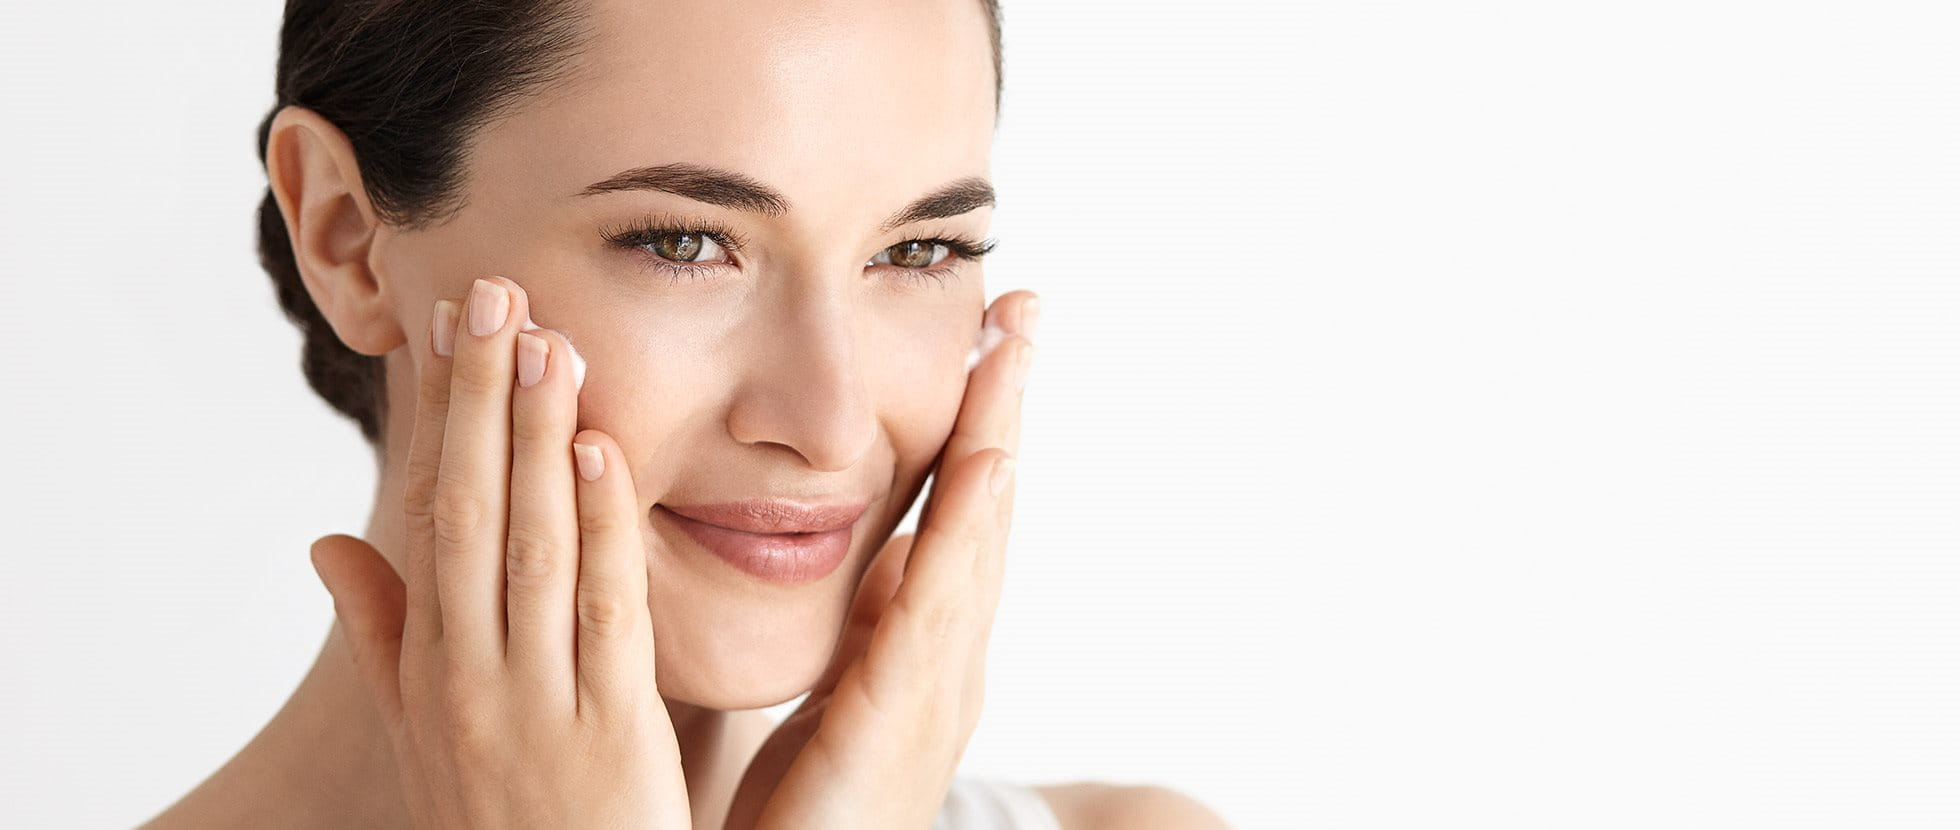 Skin aging: the signs of aging and the skin aging process